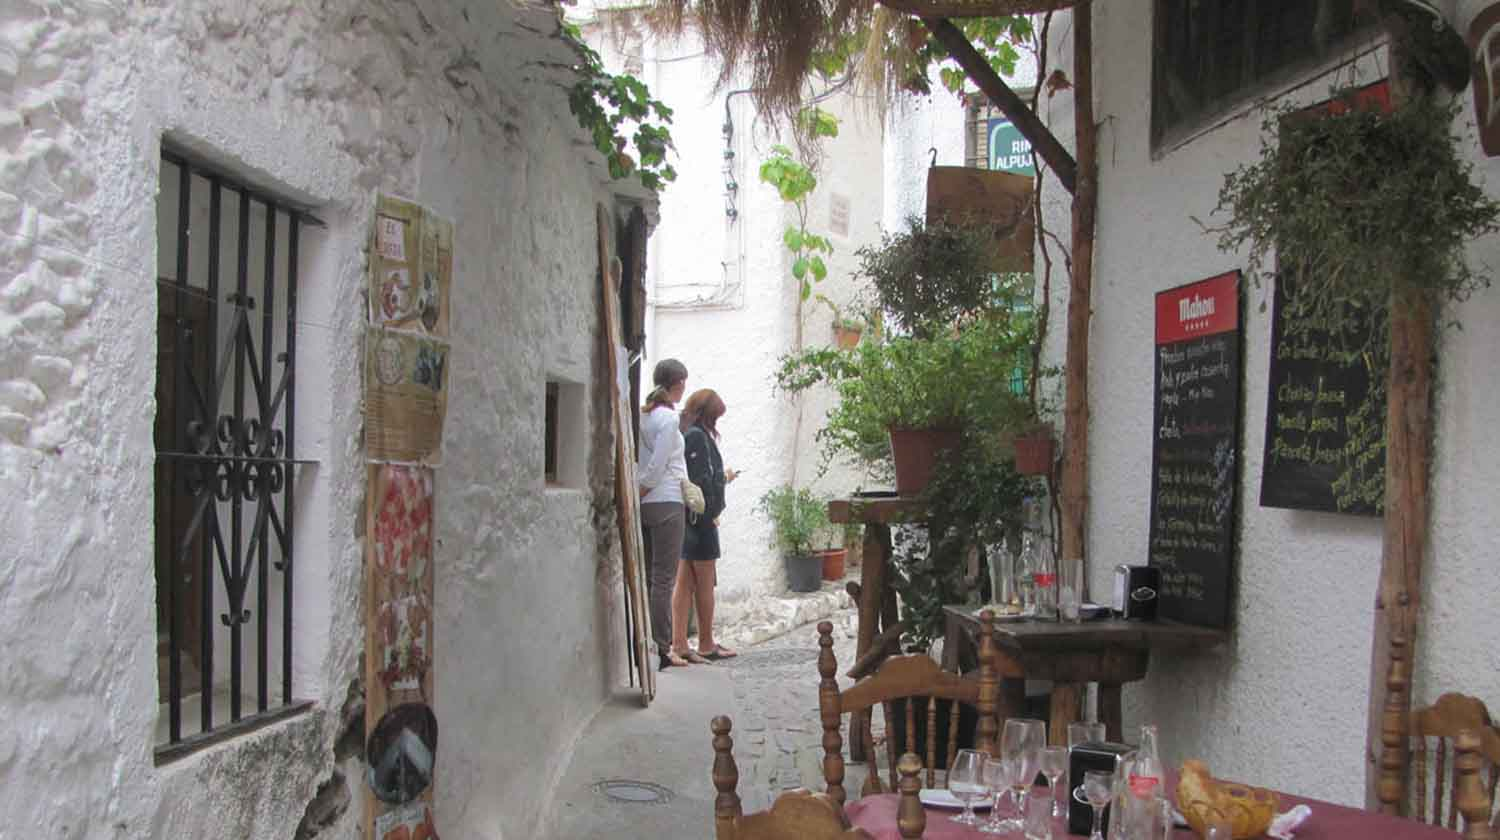 A charming street in Pampaneira